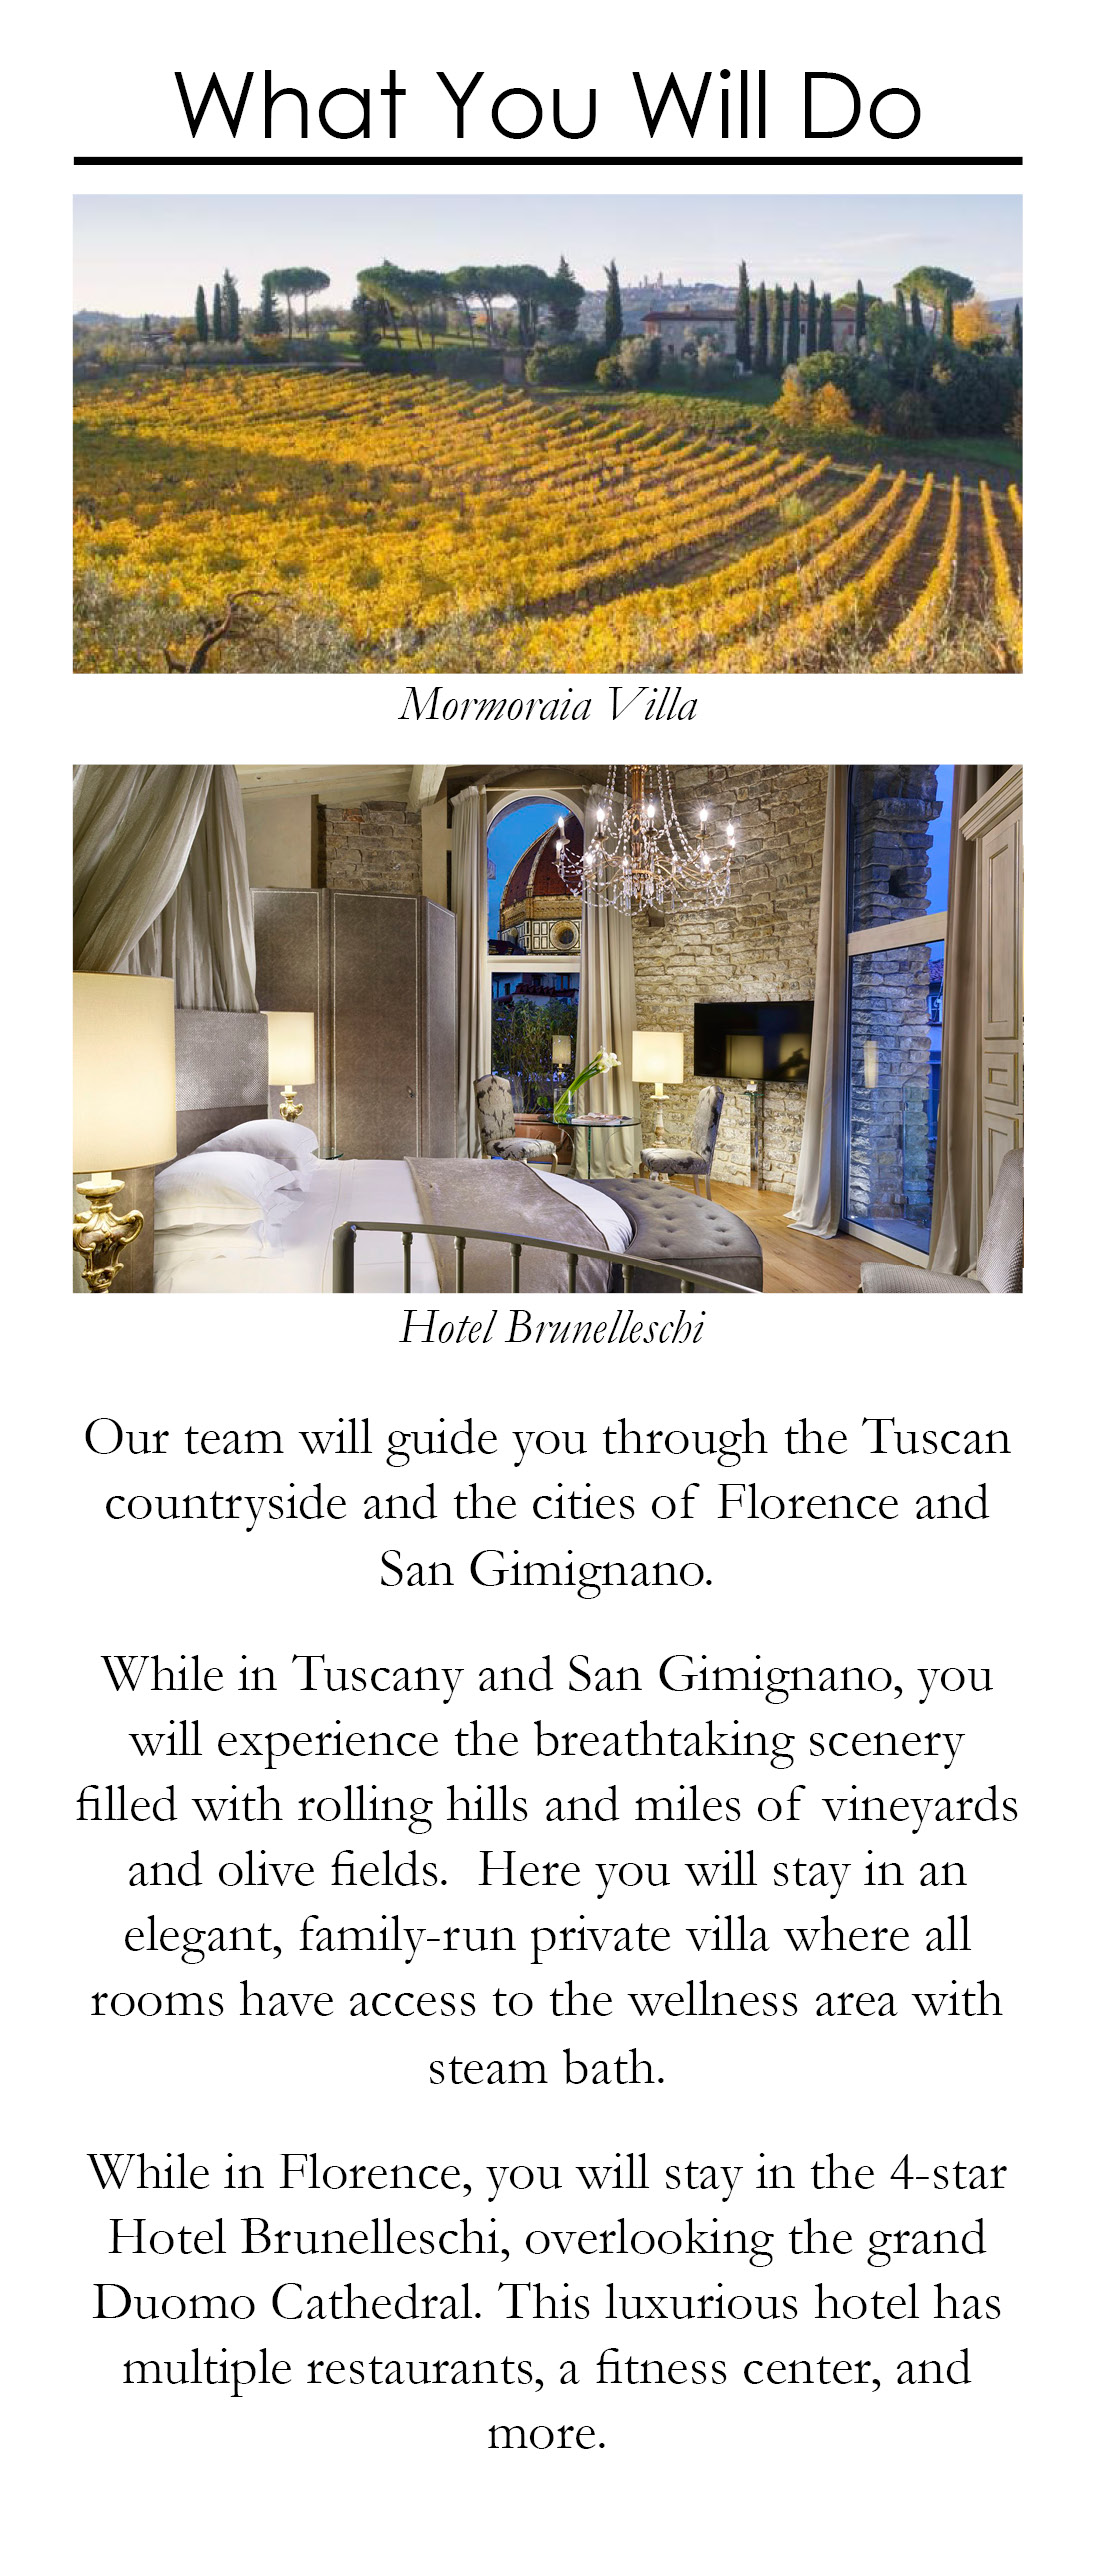 Italy 2018 Tour Brochure V092717 publish online2.jpg